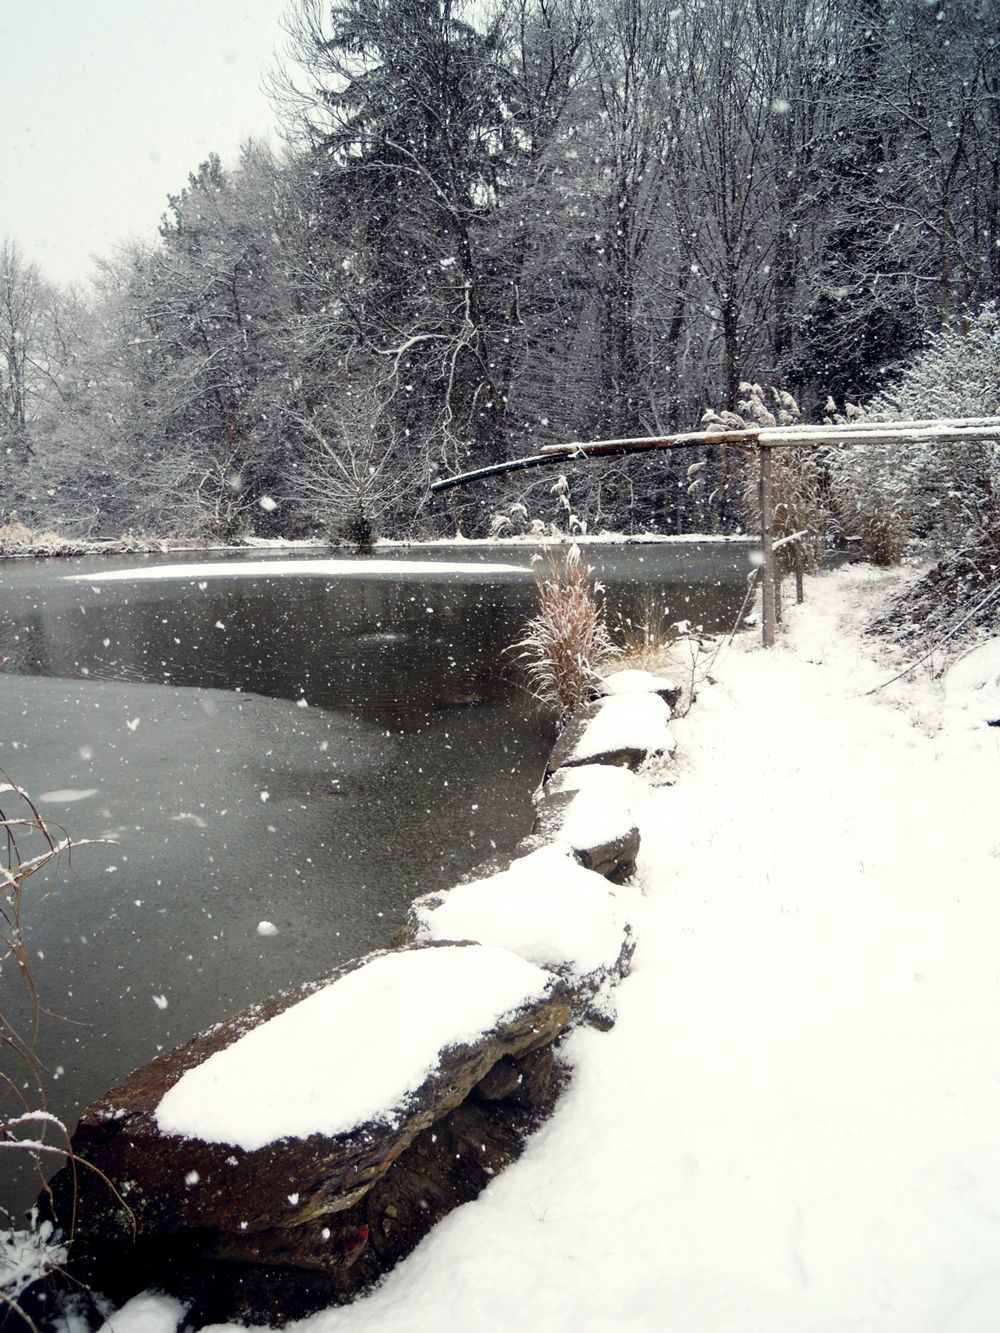 pond in the winter - taken by me